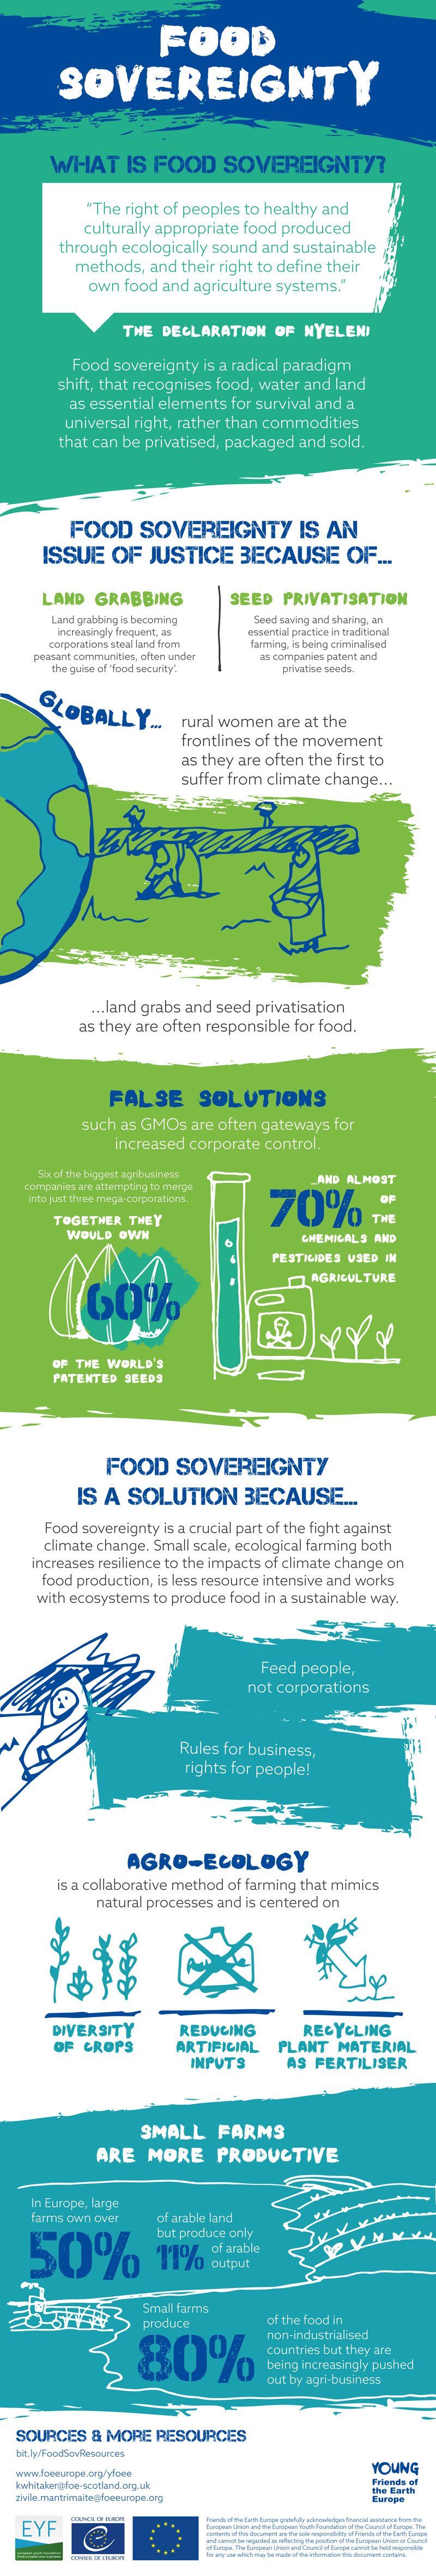 Young FoEE food sovereignty infographic